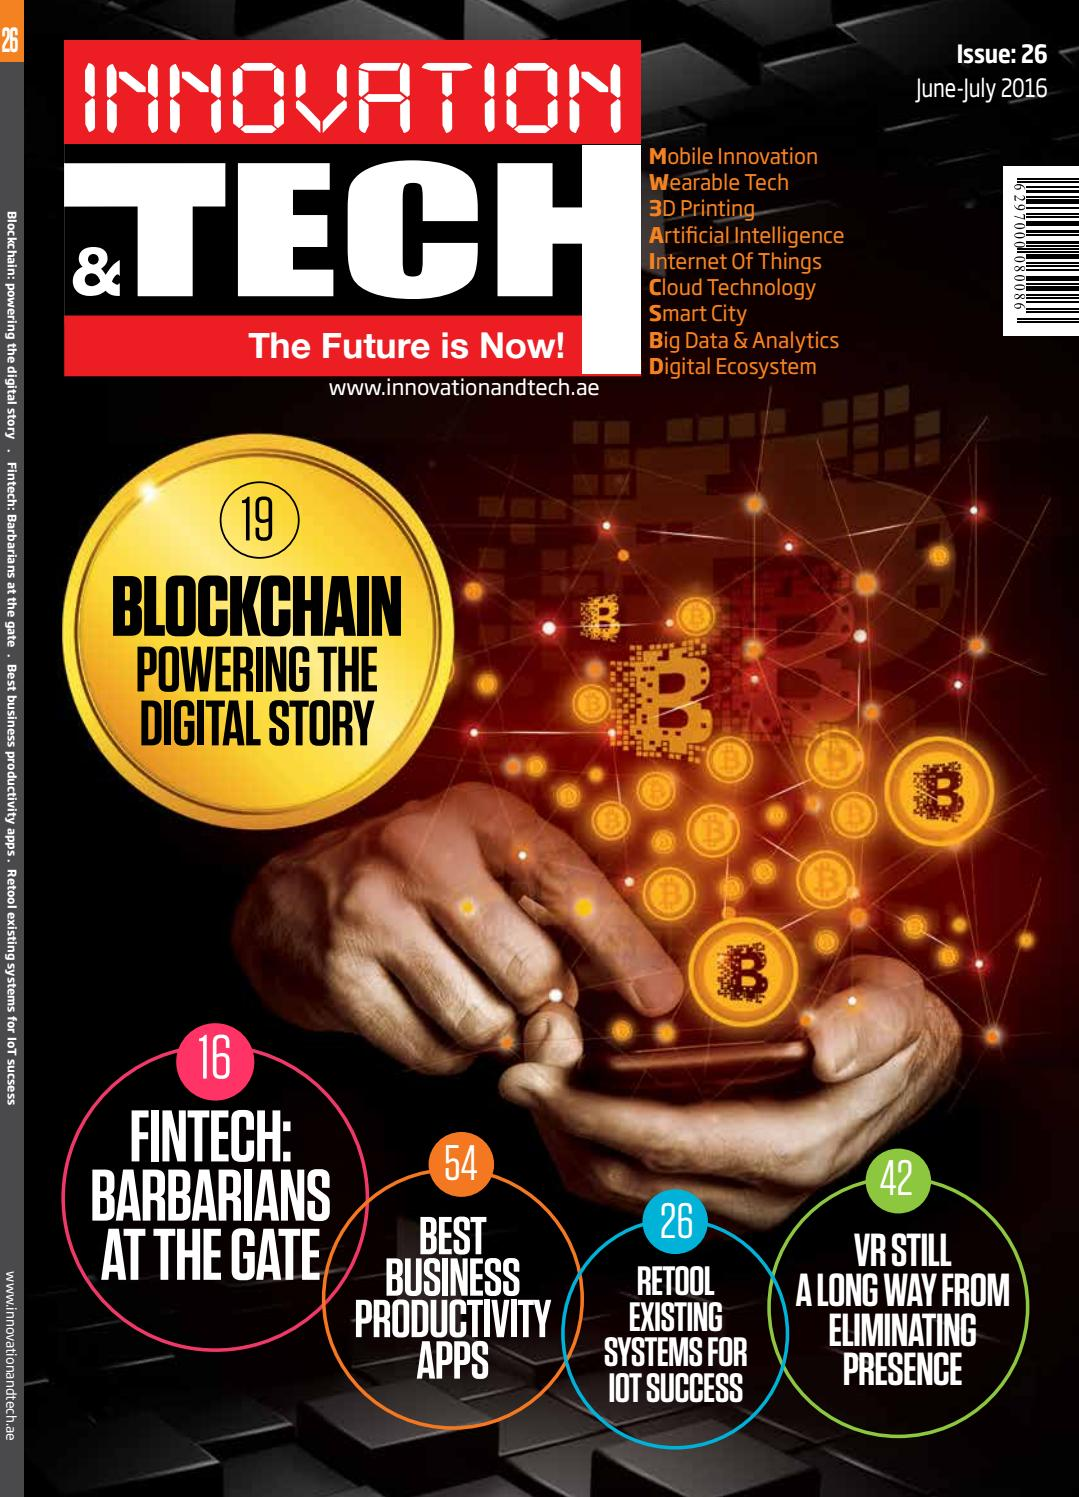 Innovation Amp Tech June 2016 Issue 26 By Spi Publishing